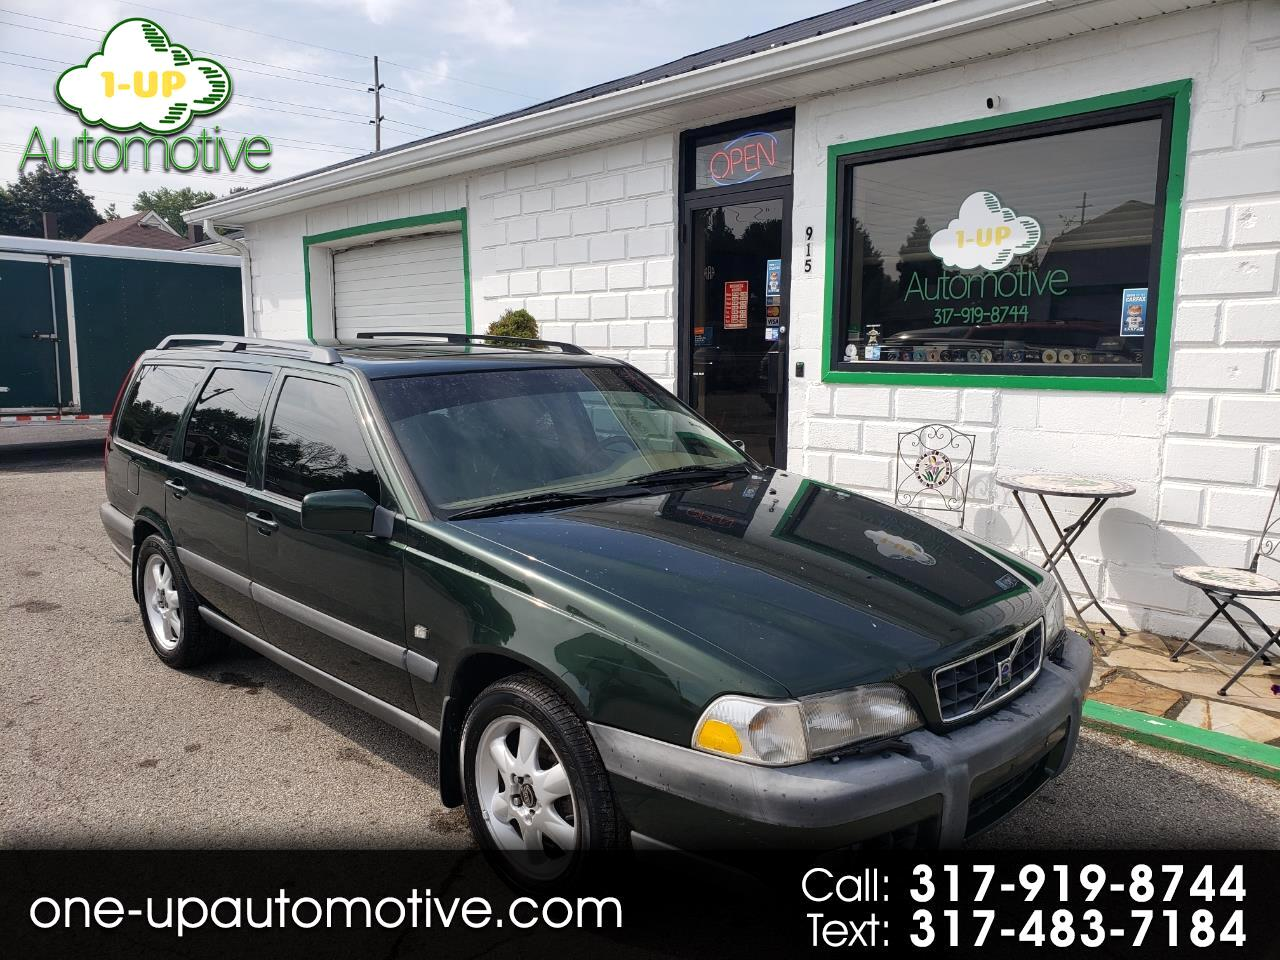 2000 Volvo V70 XC SE AWD 4dr Turbo Wagon